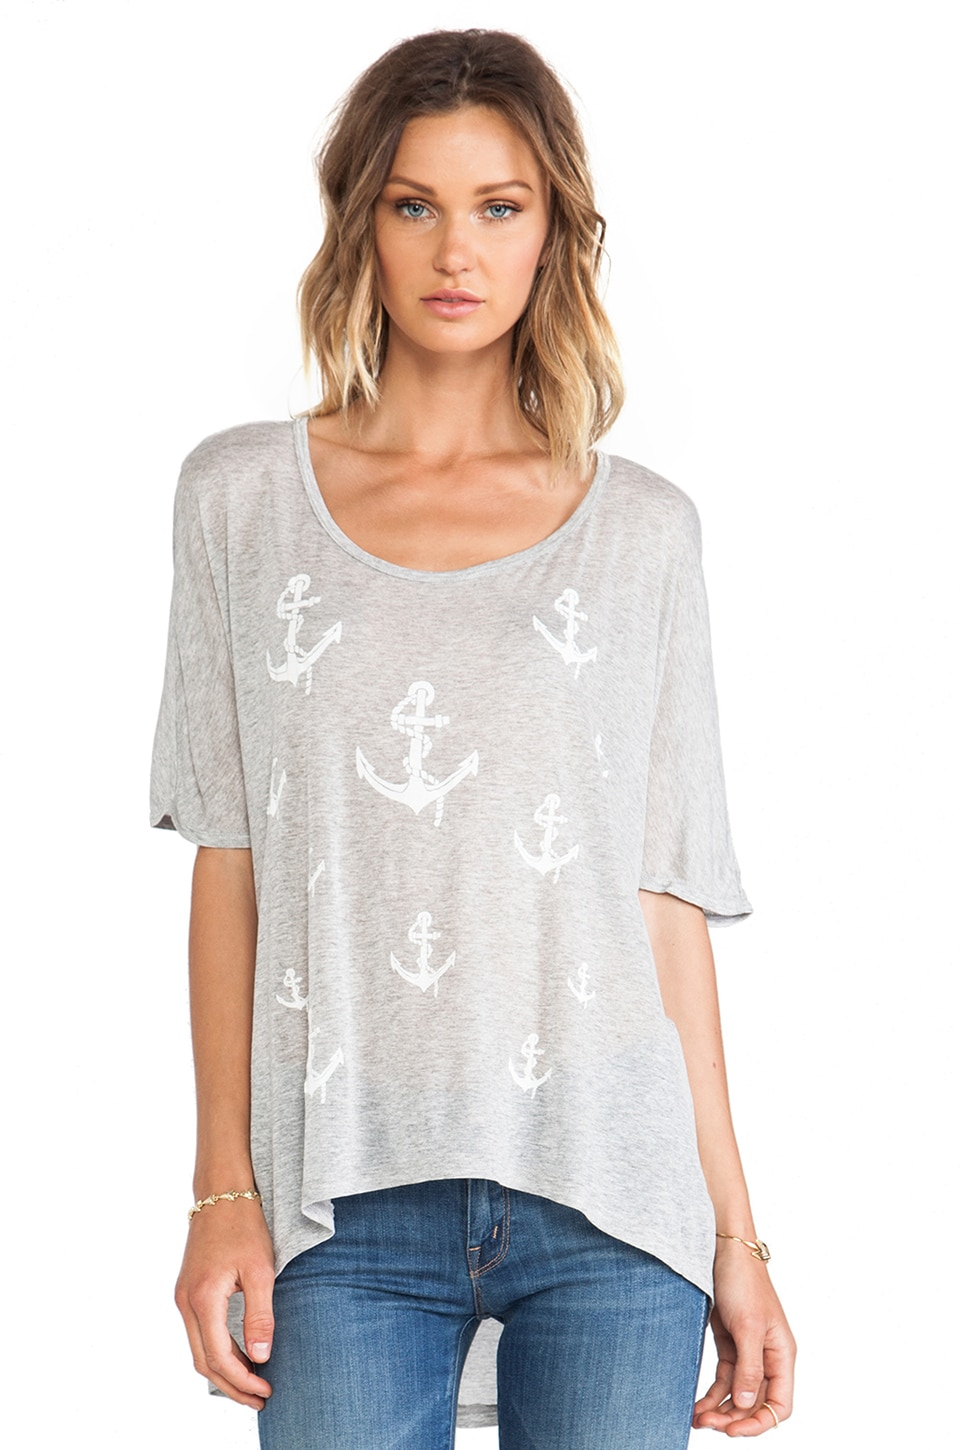 291 Anchors Oversized Tunic in Heather Grey